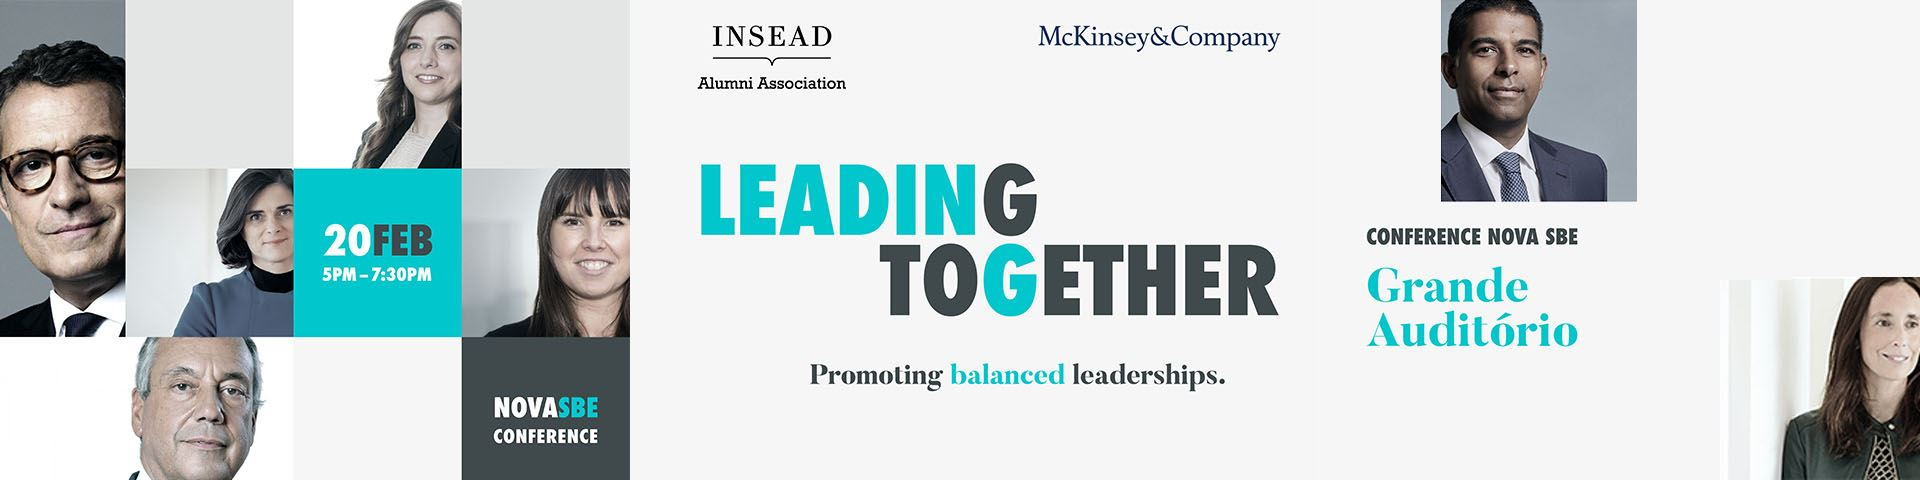 Leading The Future with INSEAD and McKinsey & Company // Leading Together is Leading The Future